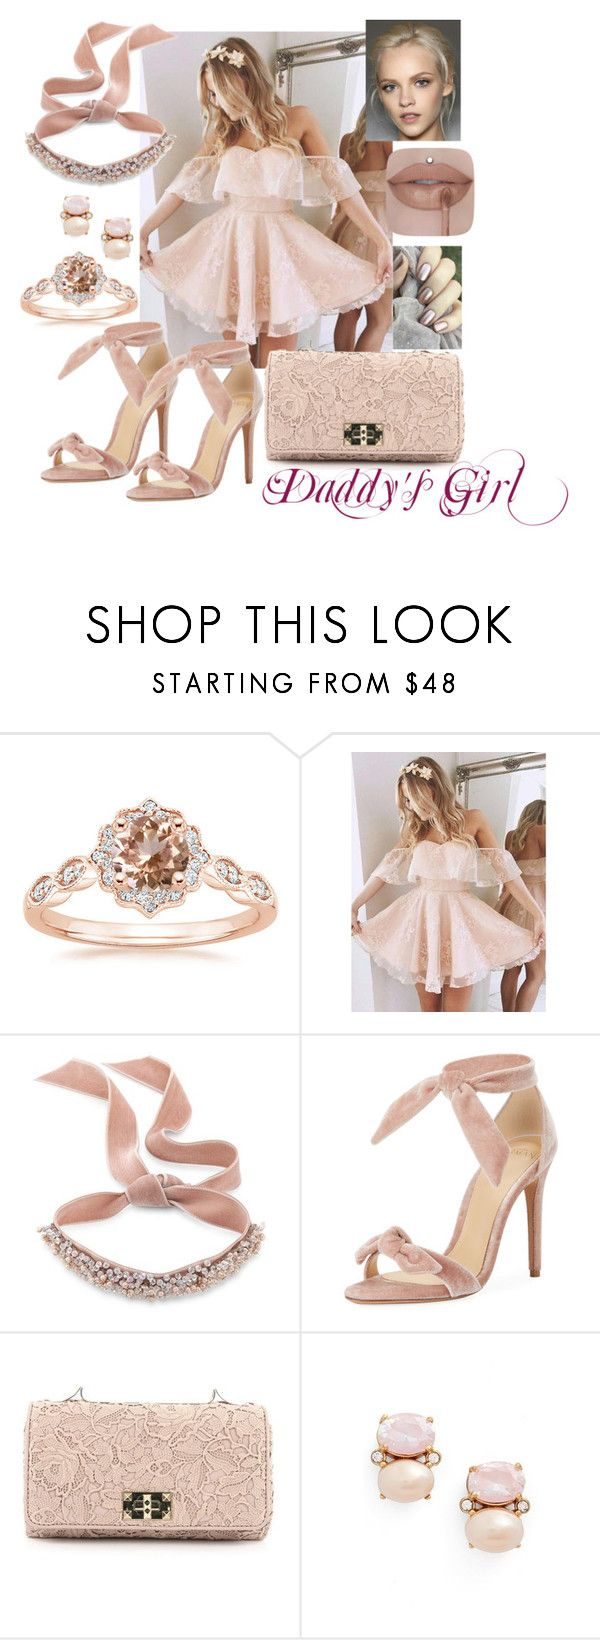 """""""Daddy's Girl"""" by thebigtree on Polyvore featuring Fallon, Alexandre Birman, Valentino and Kate Spade"""